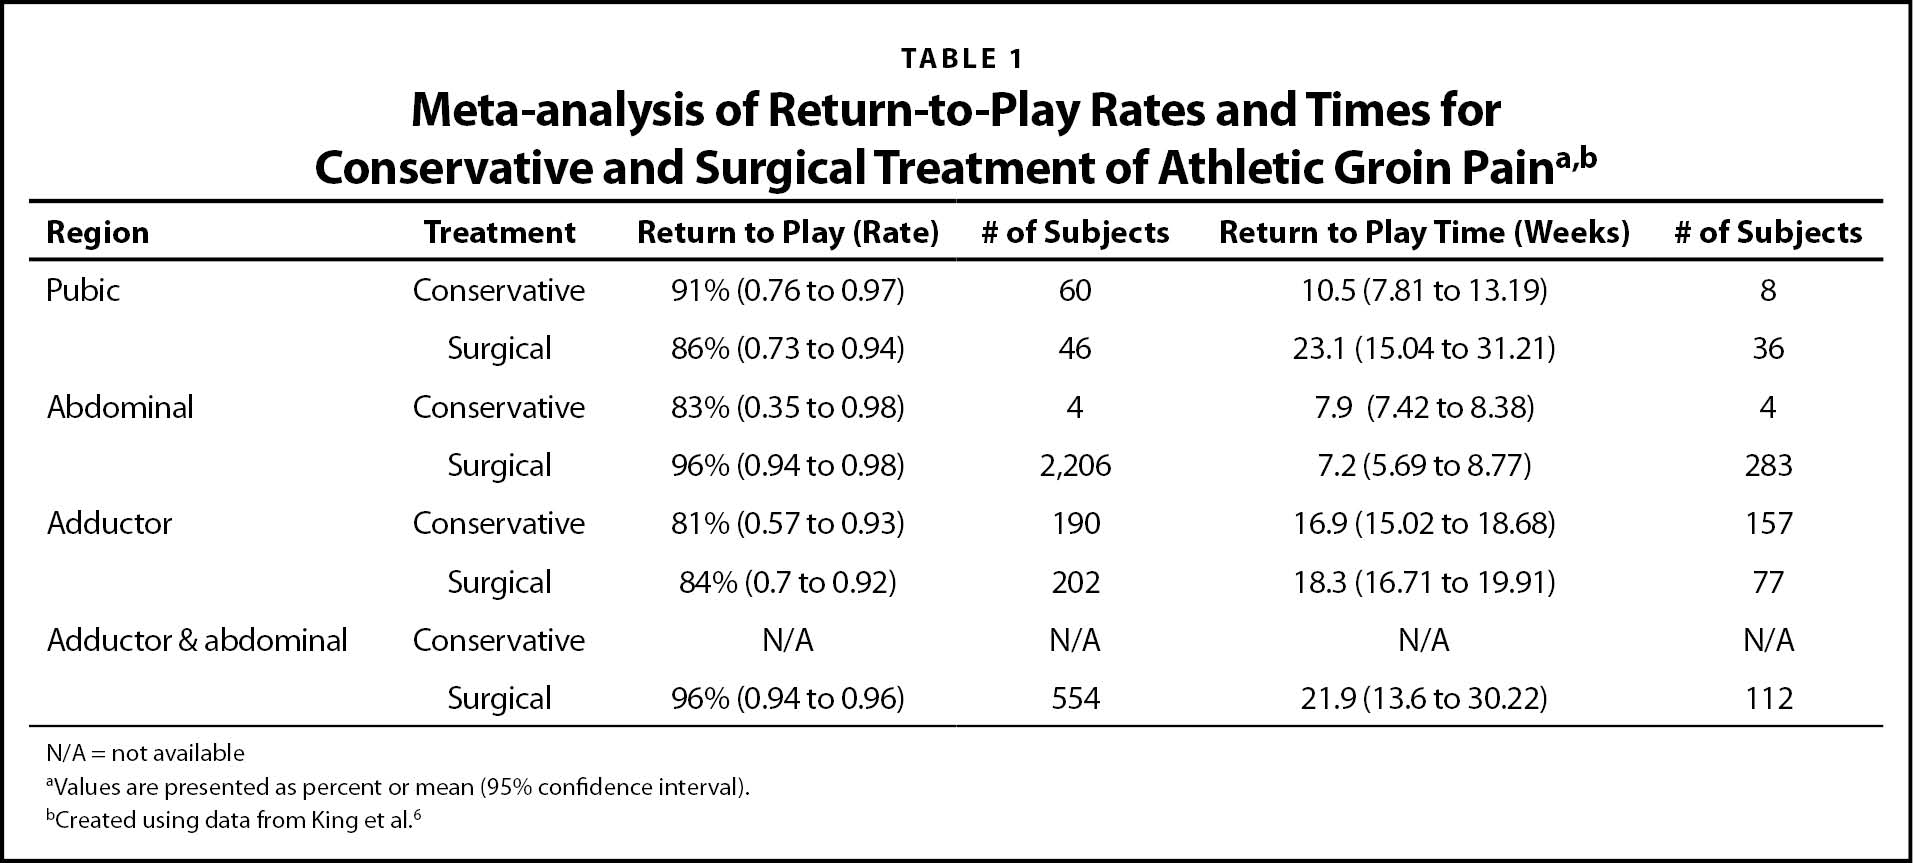 Meta-analysis of Return-to-Play Rates and Times for Conservative and Surgical Treatment of Athletic Groin Paina,b